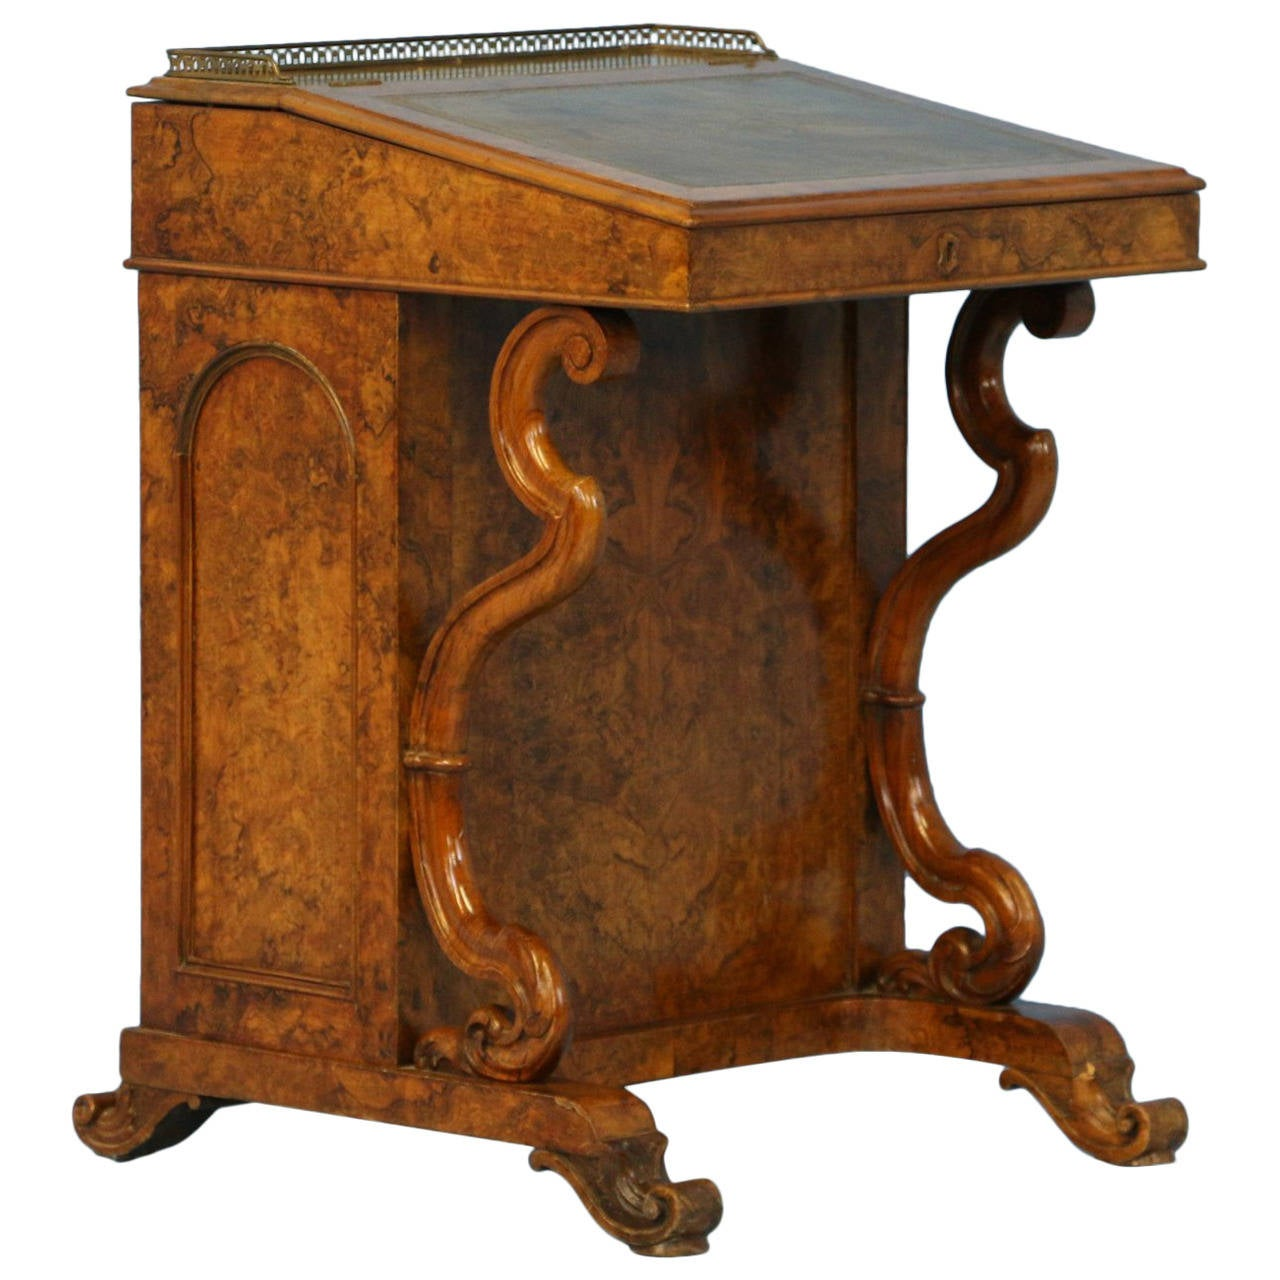 Antique English Davenport Desk, circa 1800 For Sale - Antique English Davenport Desk, Circa 1800 At 1stdibs